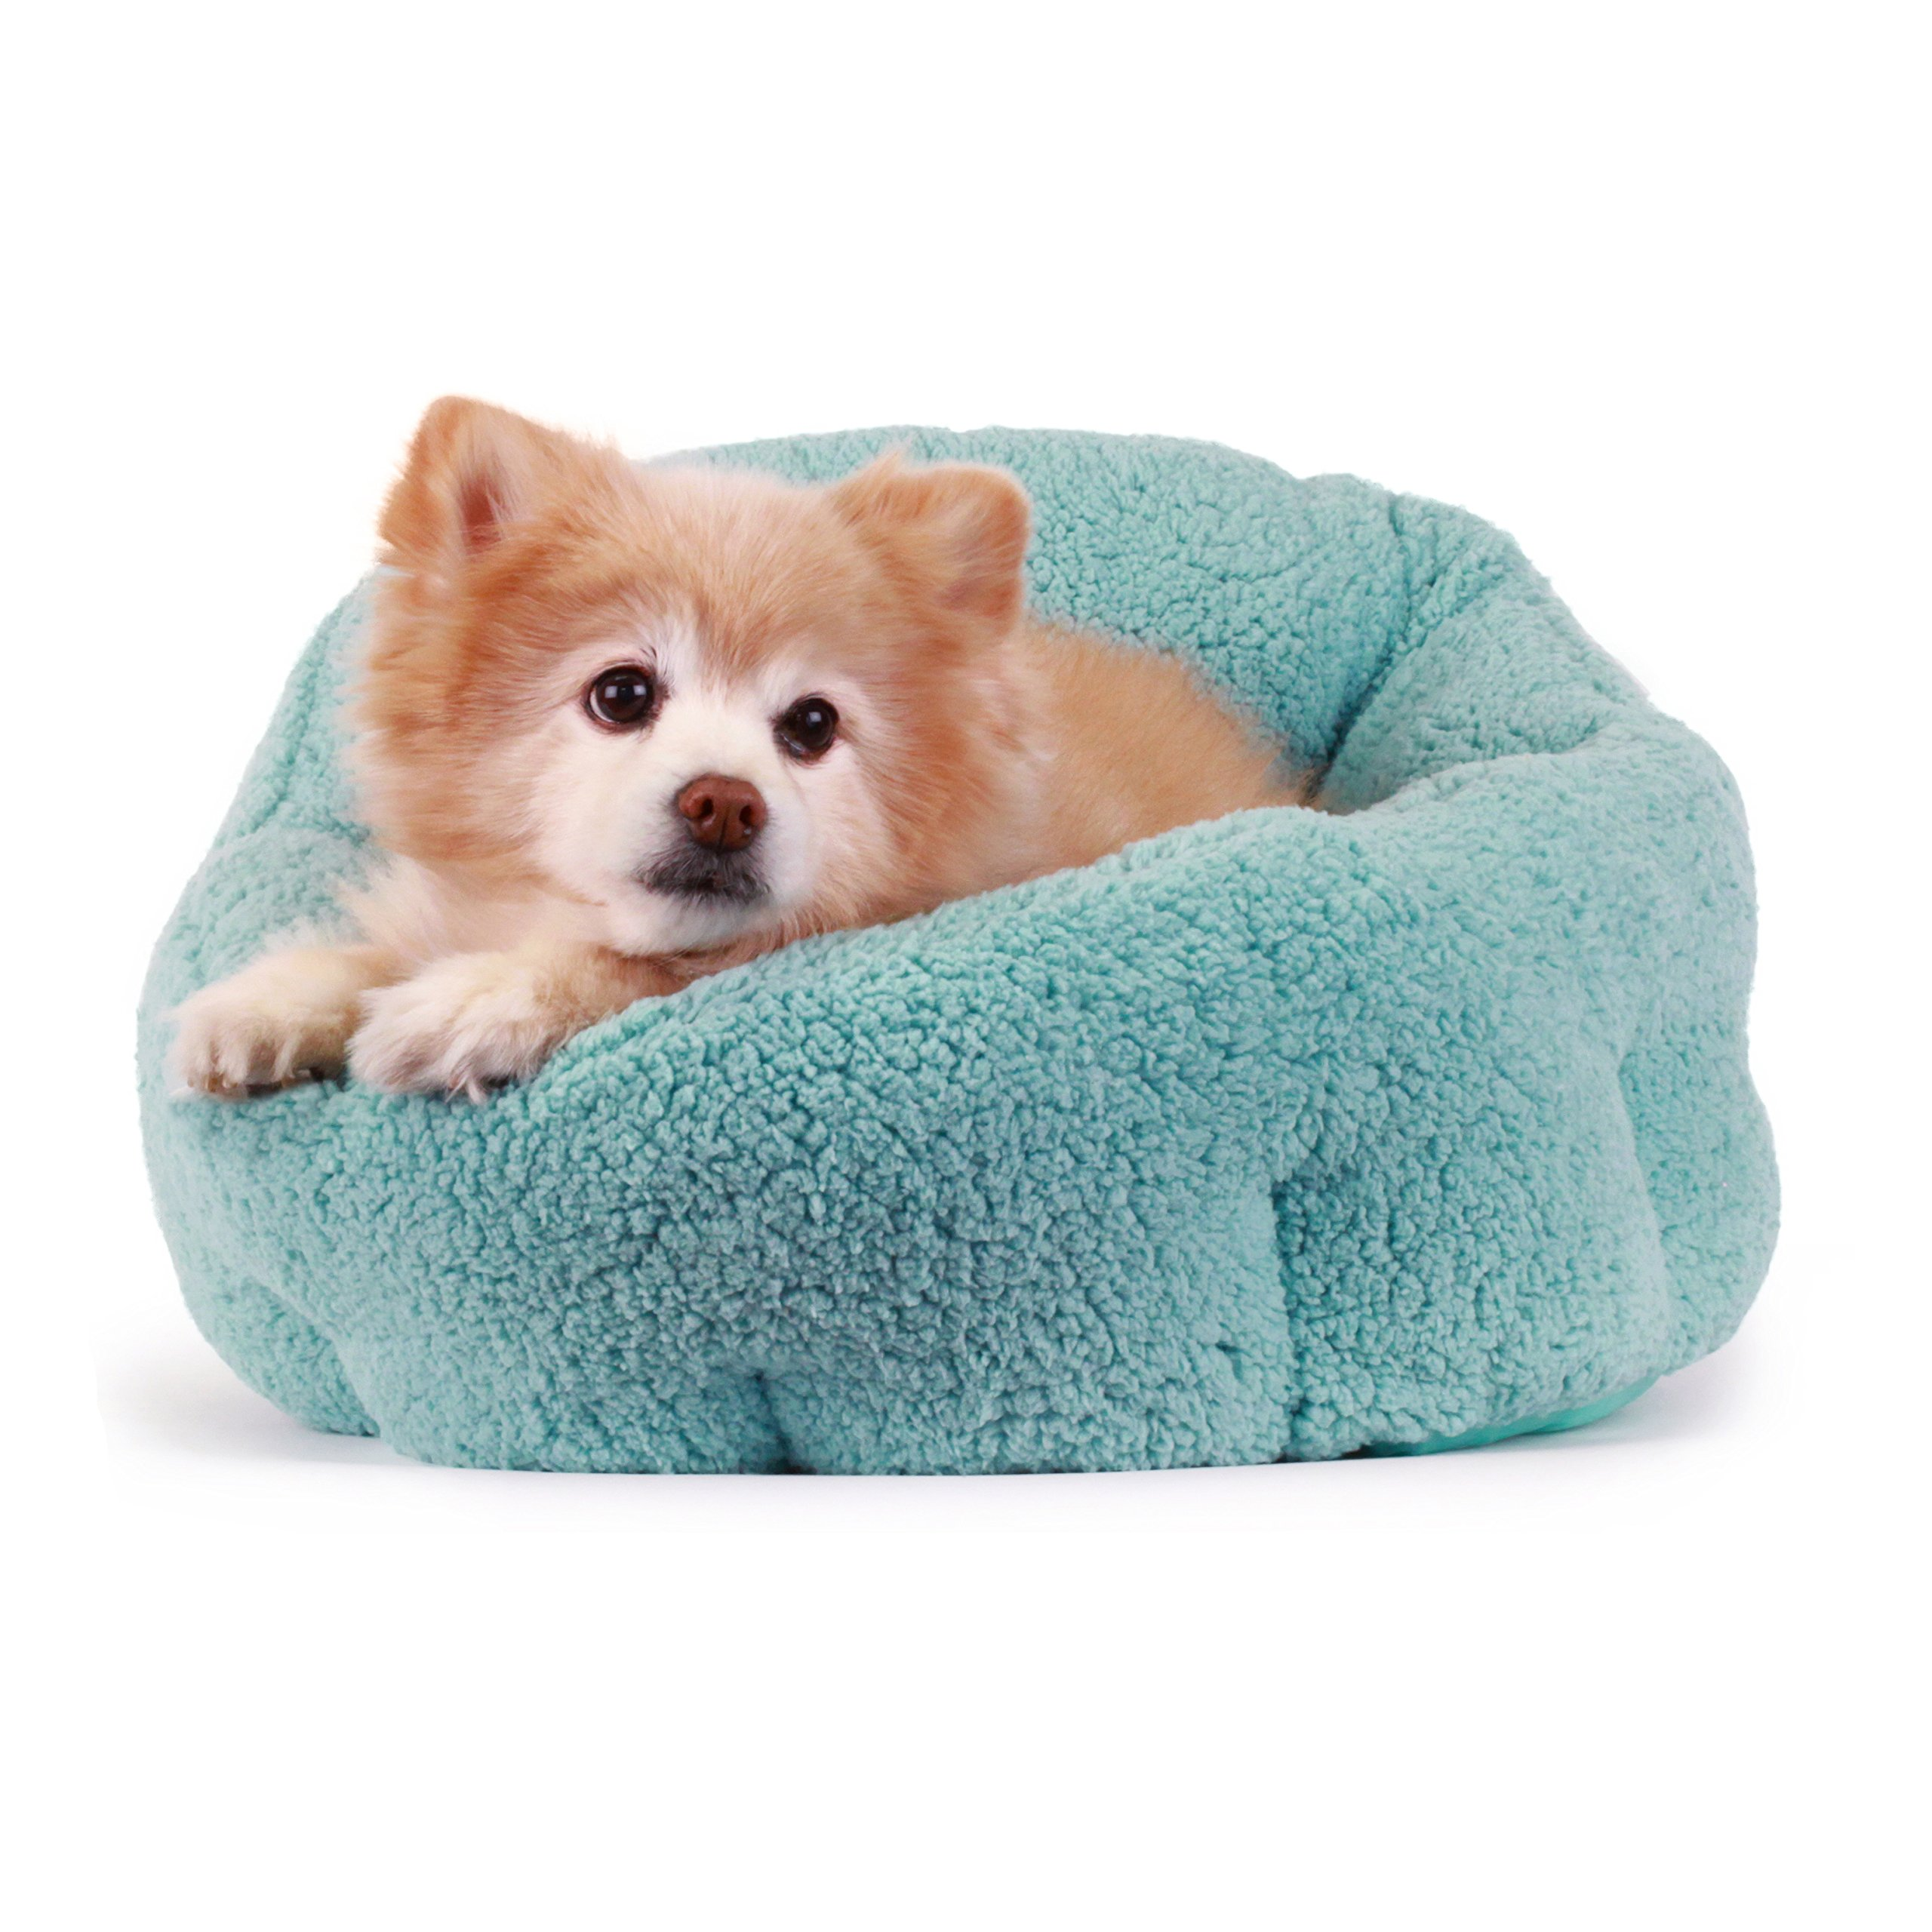 Best Friends by Sheri OrthoComfort Deep Dish Cuddler (20x20x12'') - Self-Warming  Cat and Dog Bed, Teal